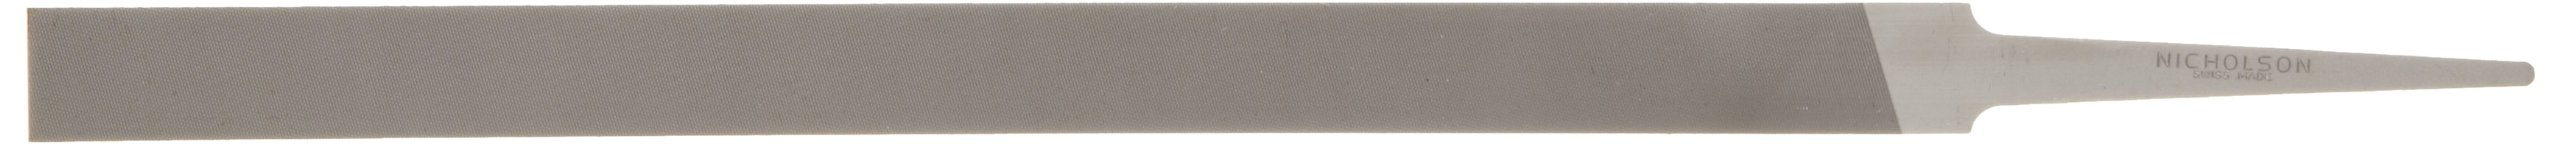 Nicholson Pillar File, Swiss Pattern, Double Cut, Rectangular, #2 Coarseness, 8'' Length